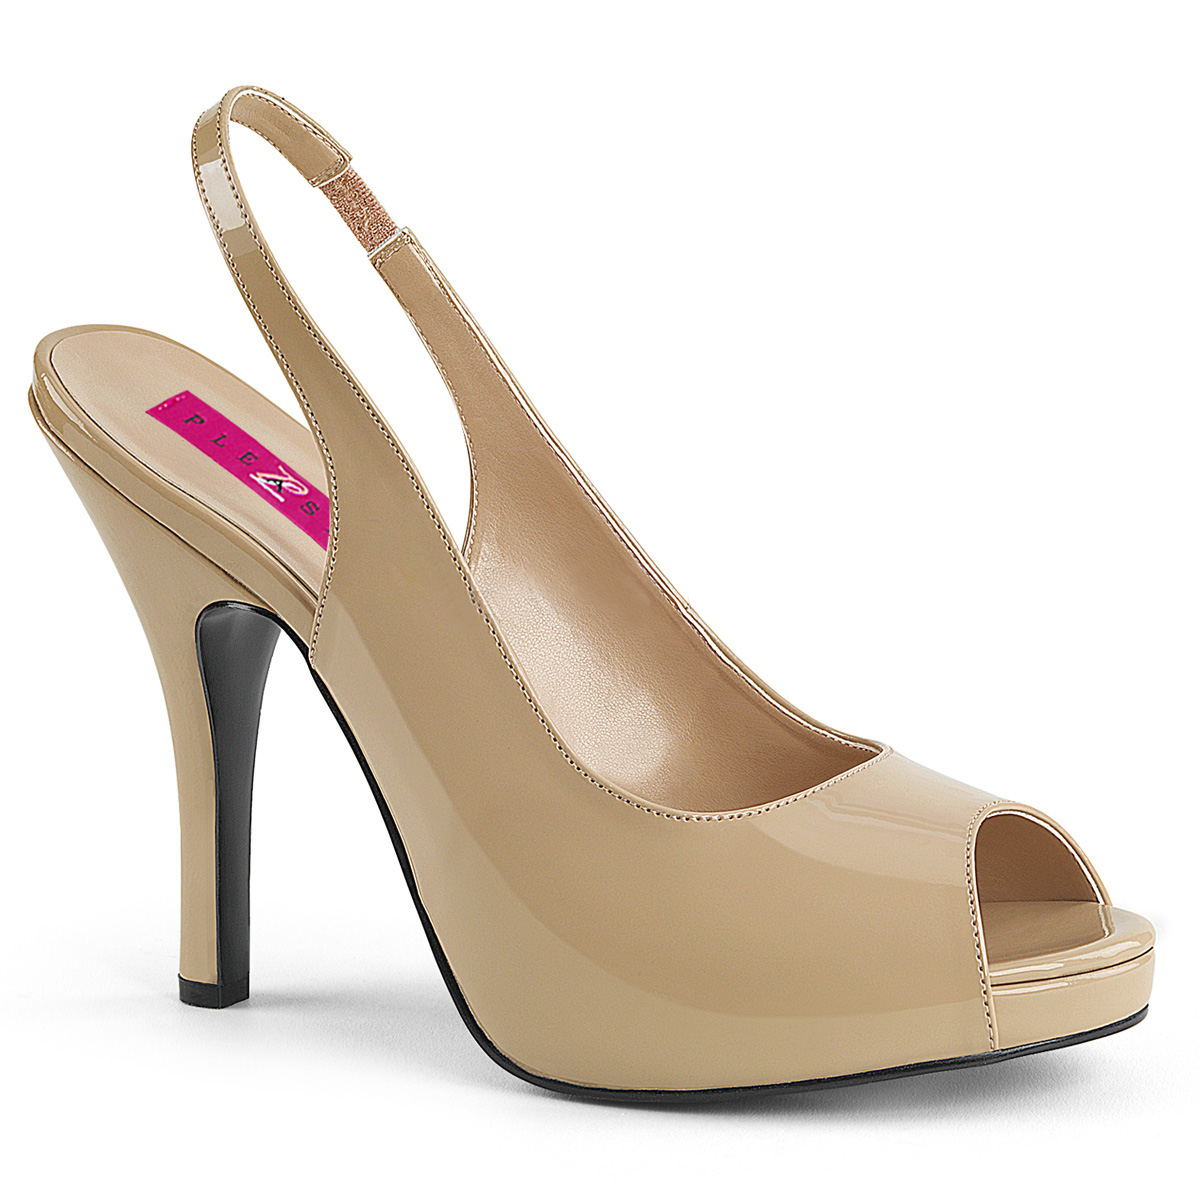 Peep Toes Sling Pumps EVE-04 - Patent